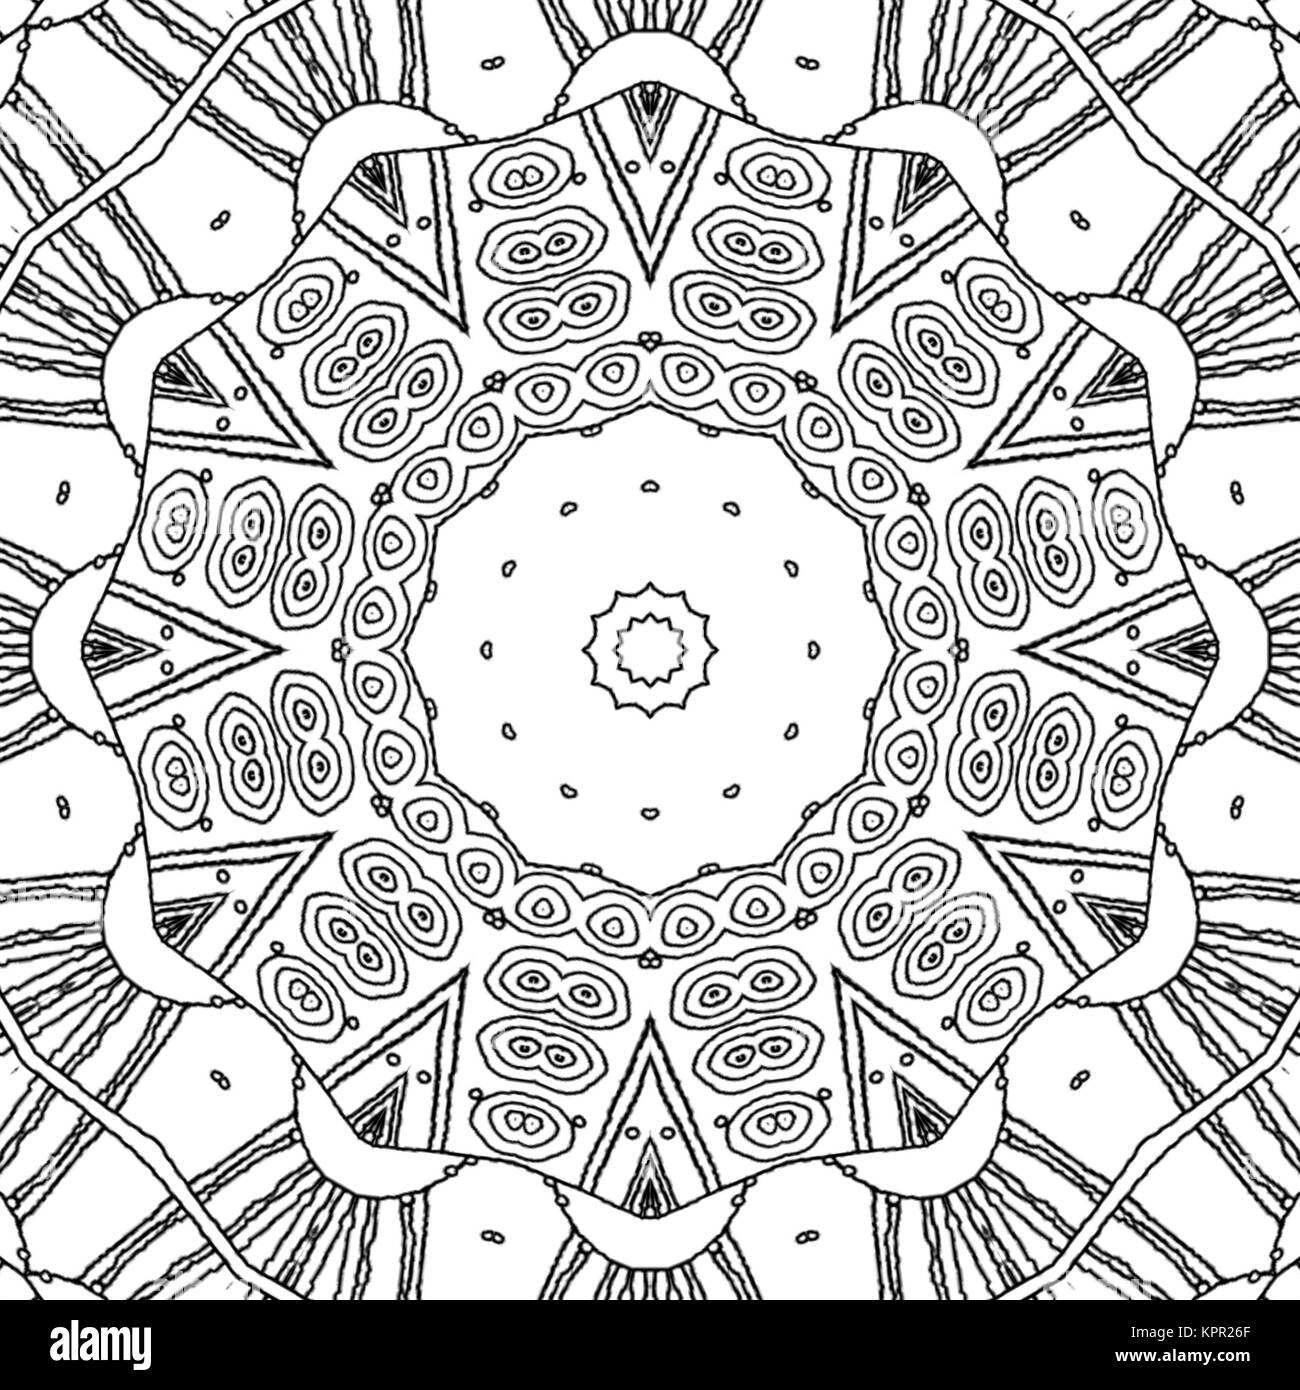 Abstract seamless coloring page. Monochrome mandala with concentric ...